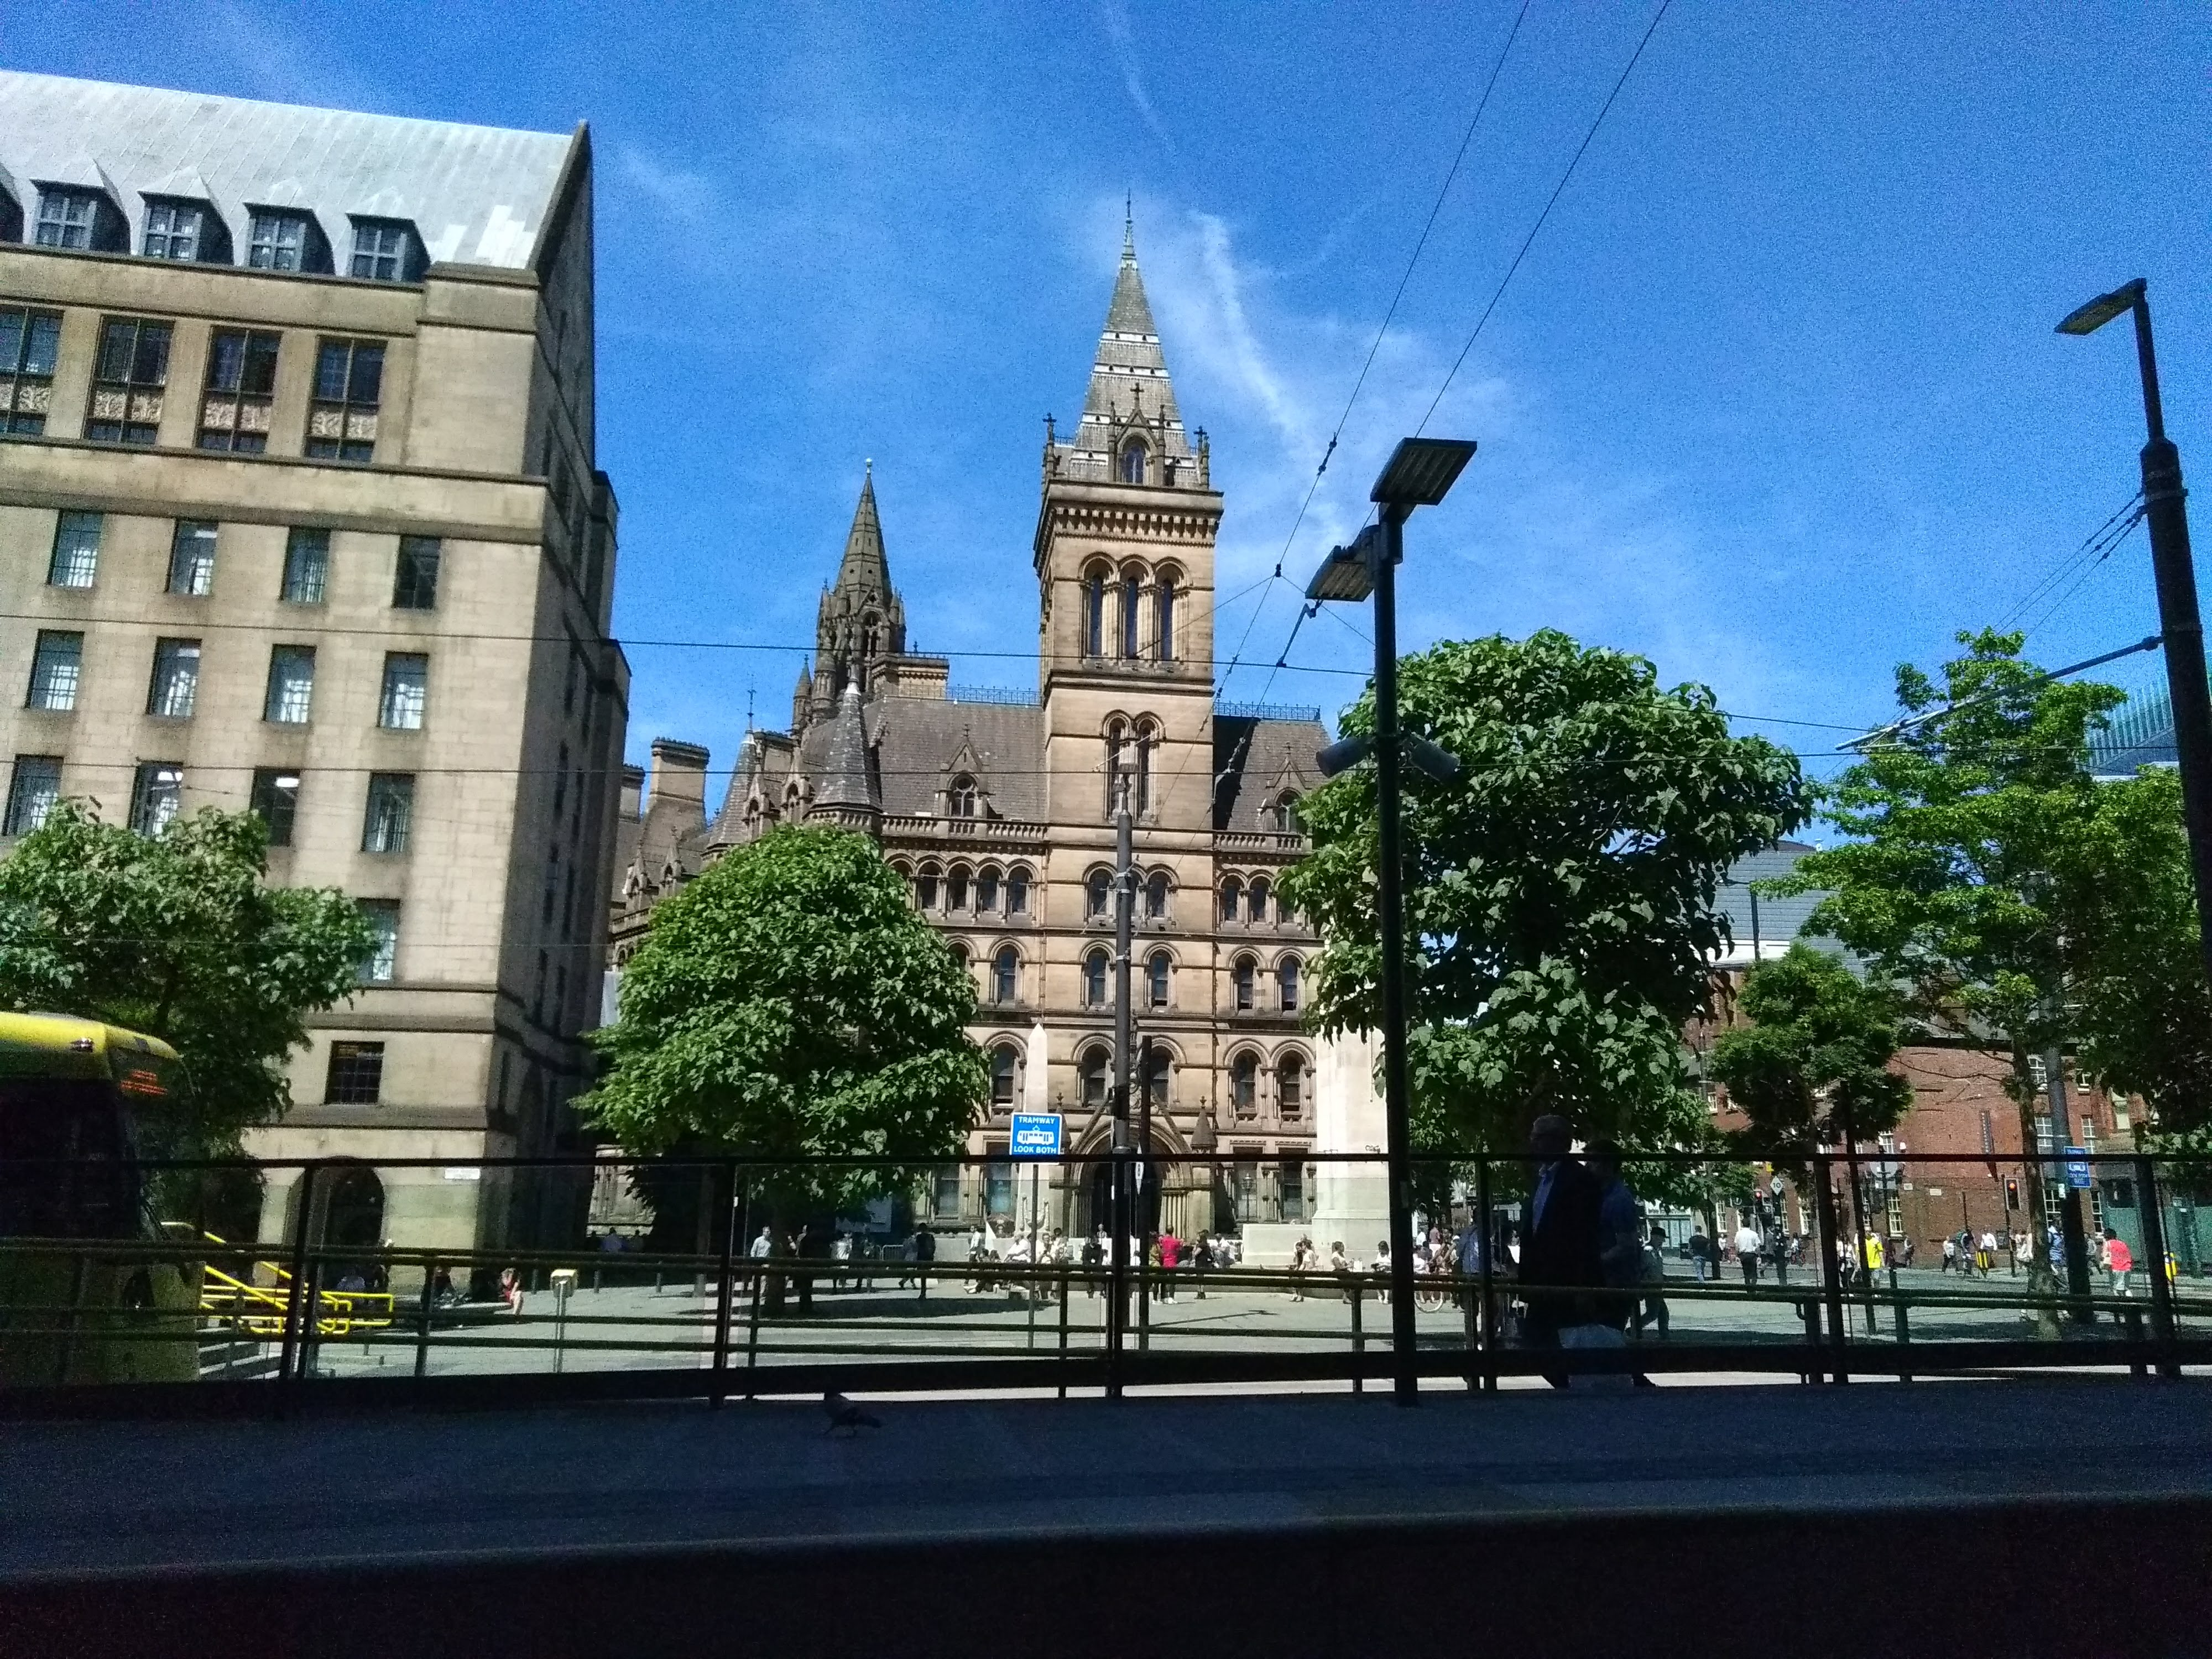 Manchester Town Hall, St Peter's Square. (photo: James Kemp)